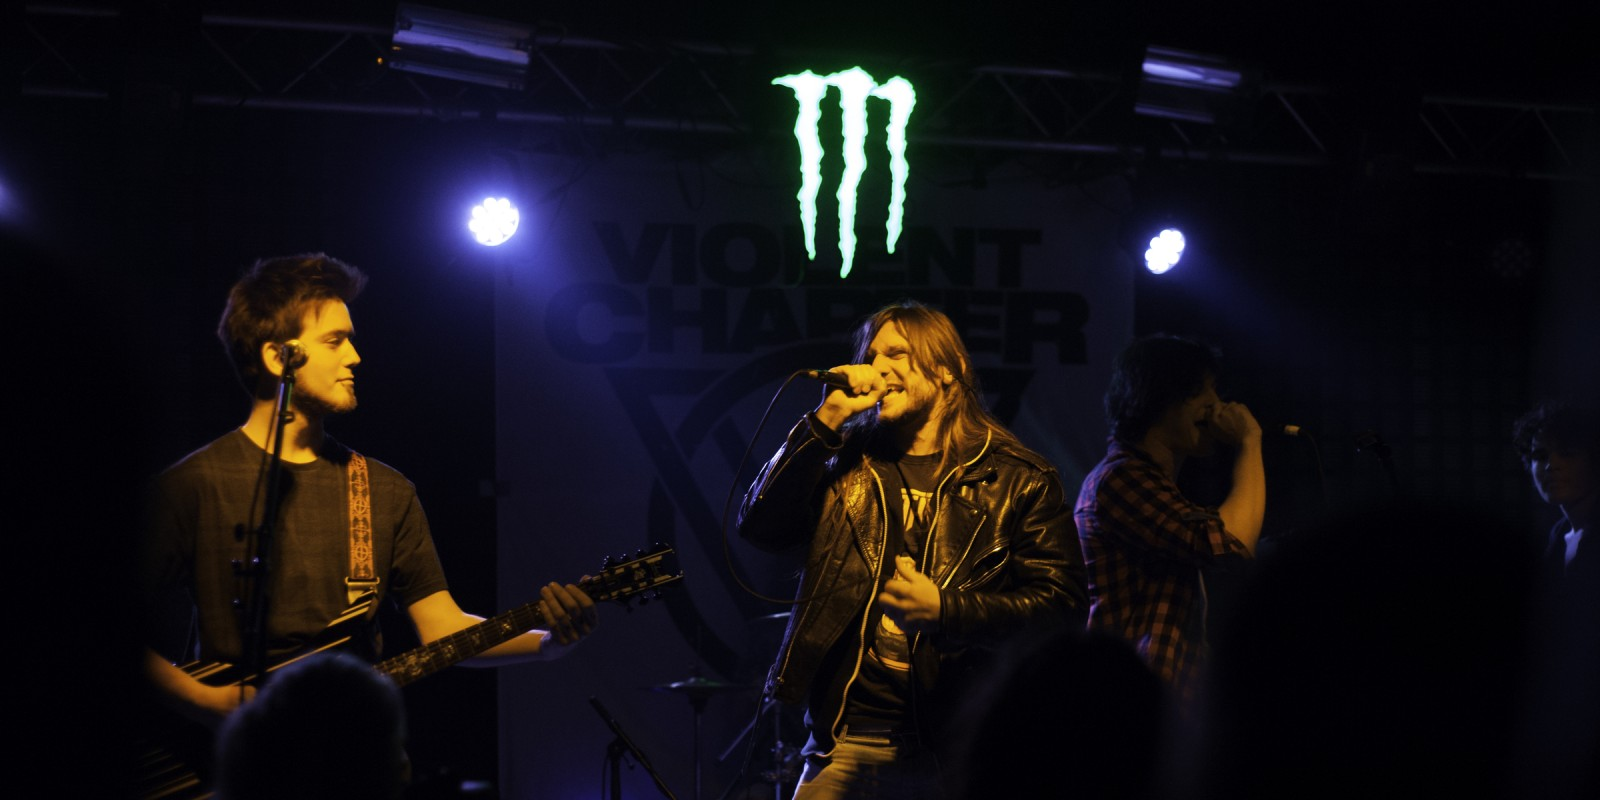 Monster Energy at the BlankFile and Violent Chapter concert.